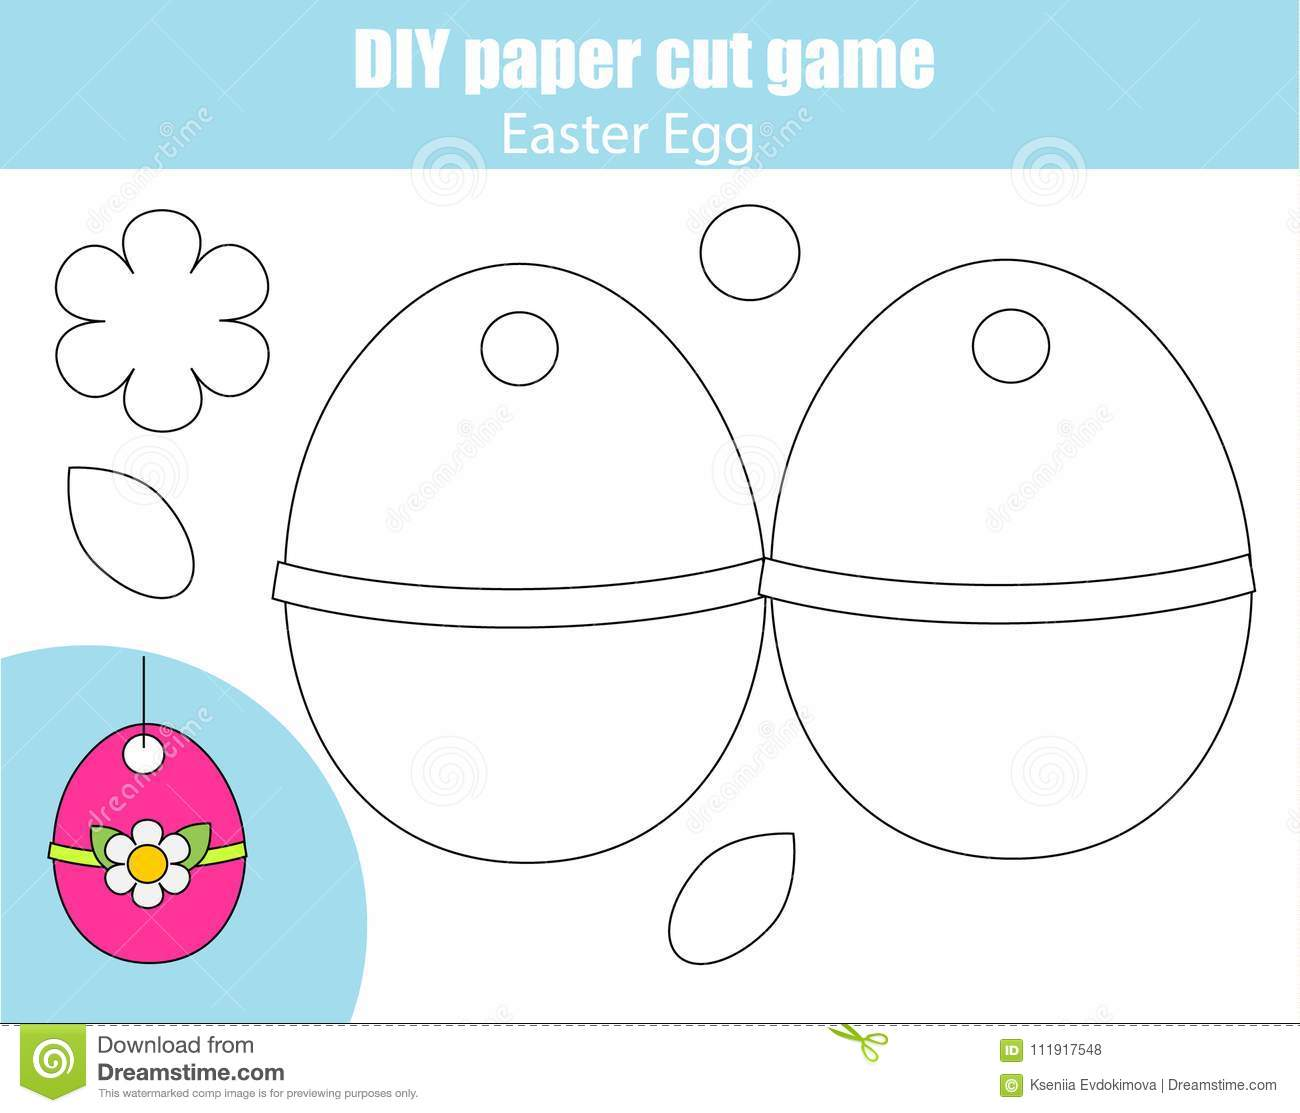 Make Easter Egg With Glue And Scissors Paper Cutting